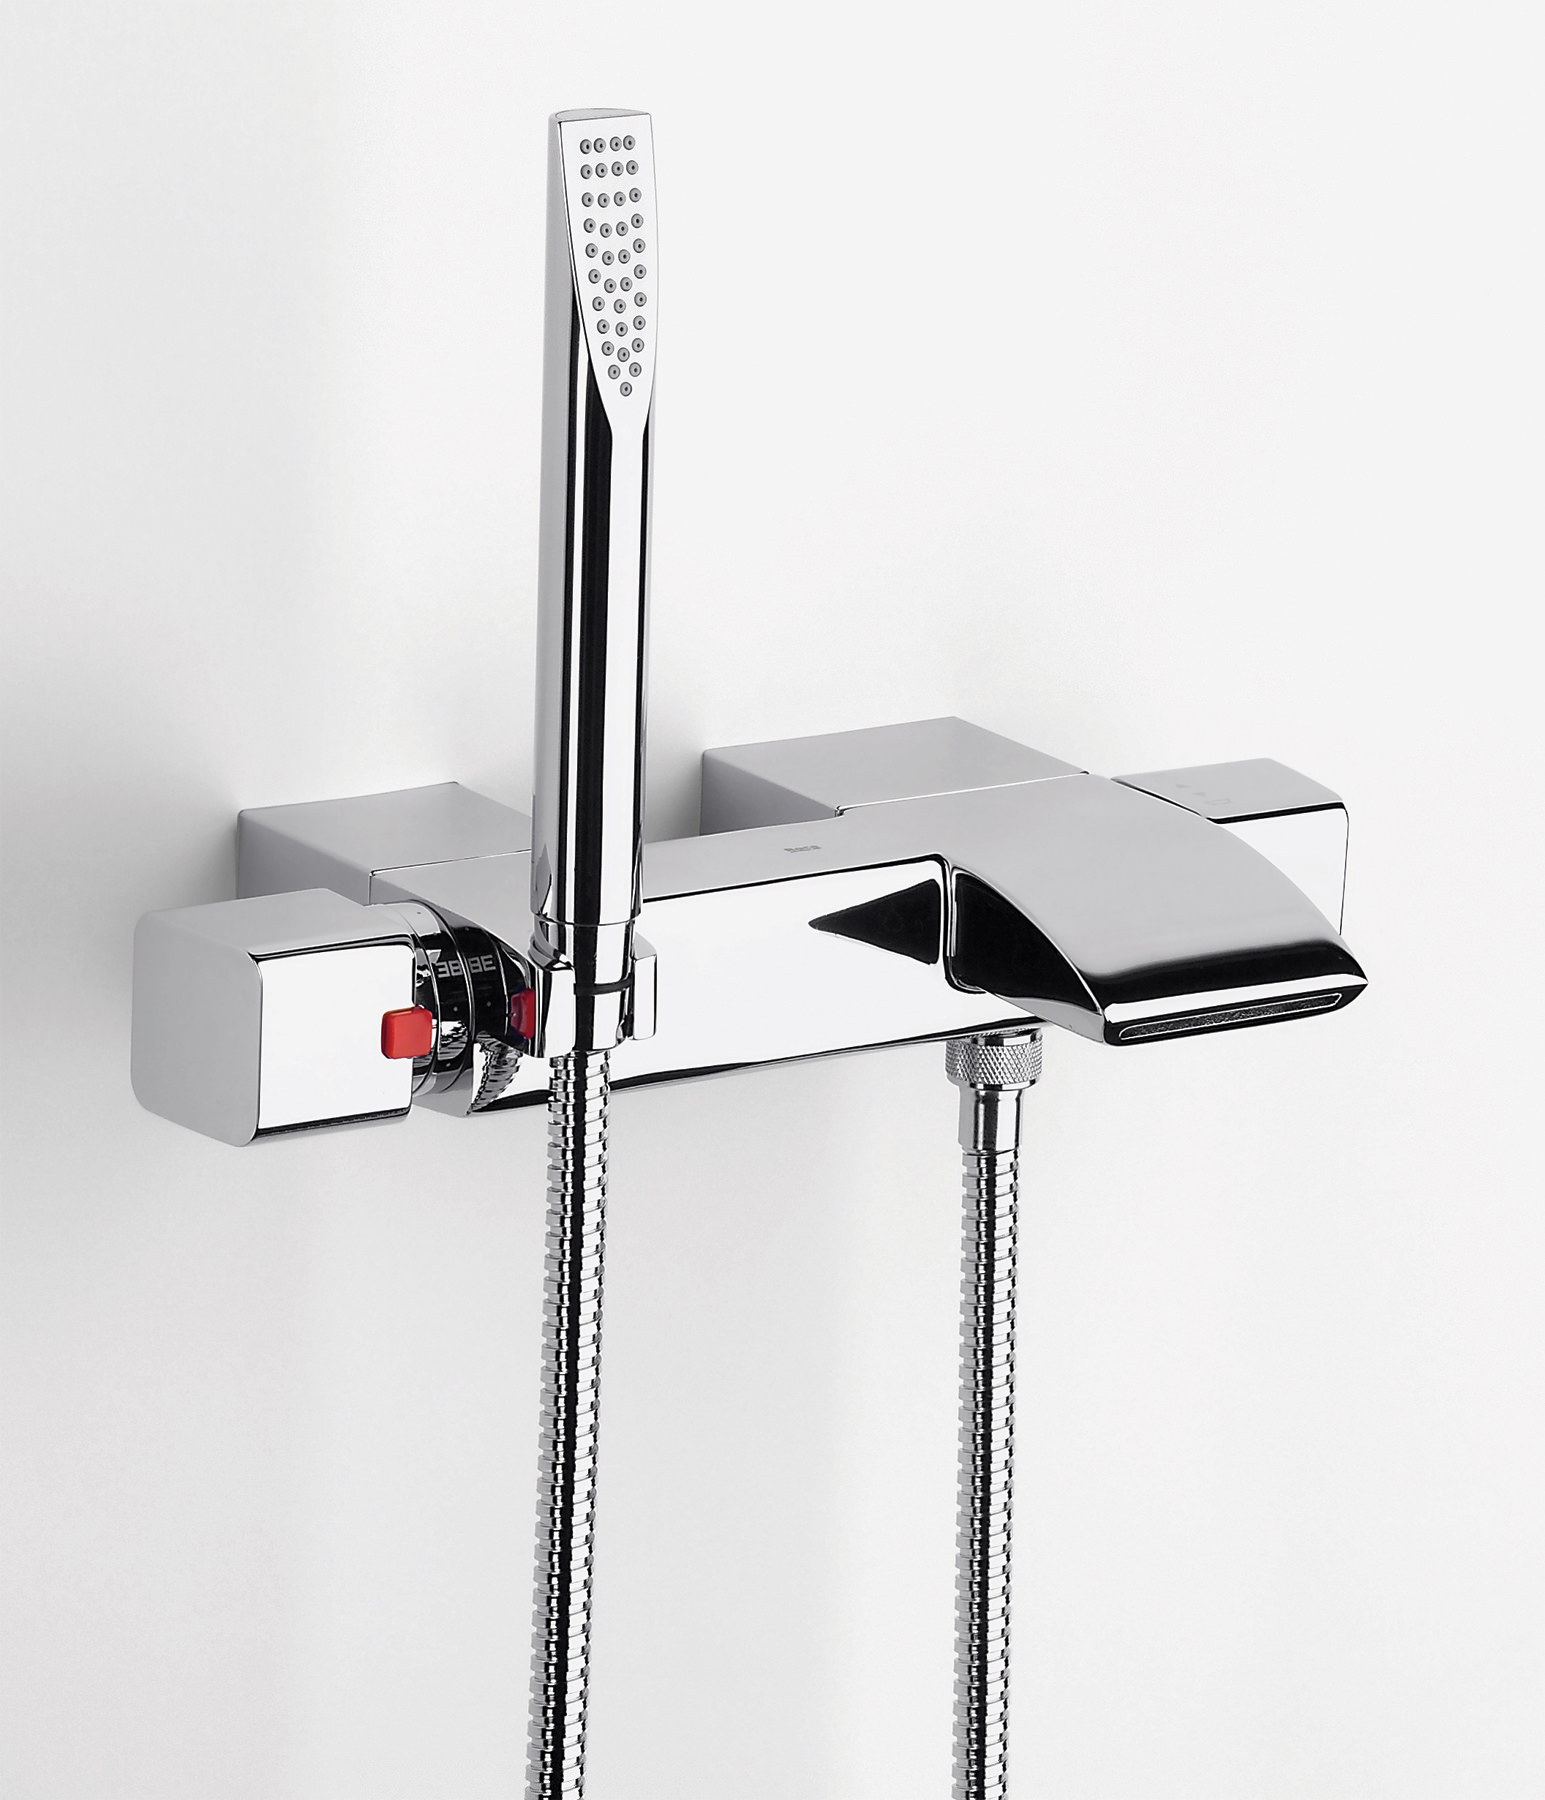 roca thesis t wall mounted bath shower mixer tap with kit roca thesis t thermostatic bath shower mixer with kit